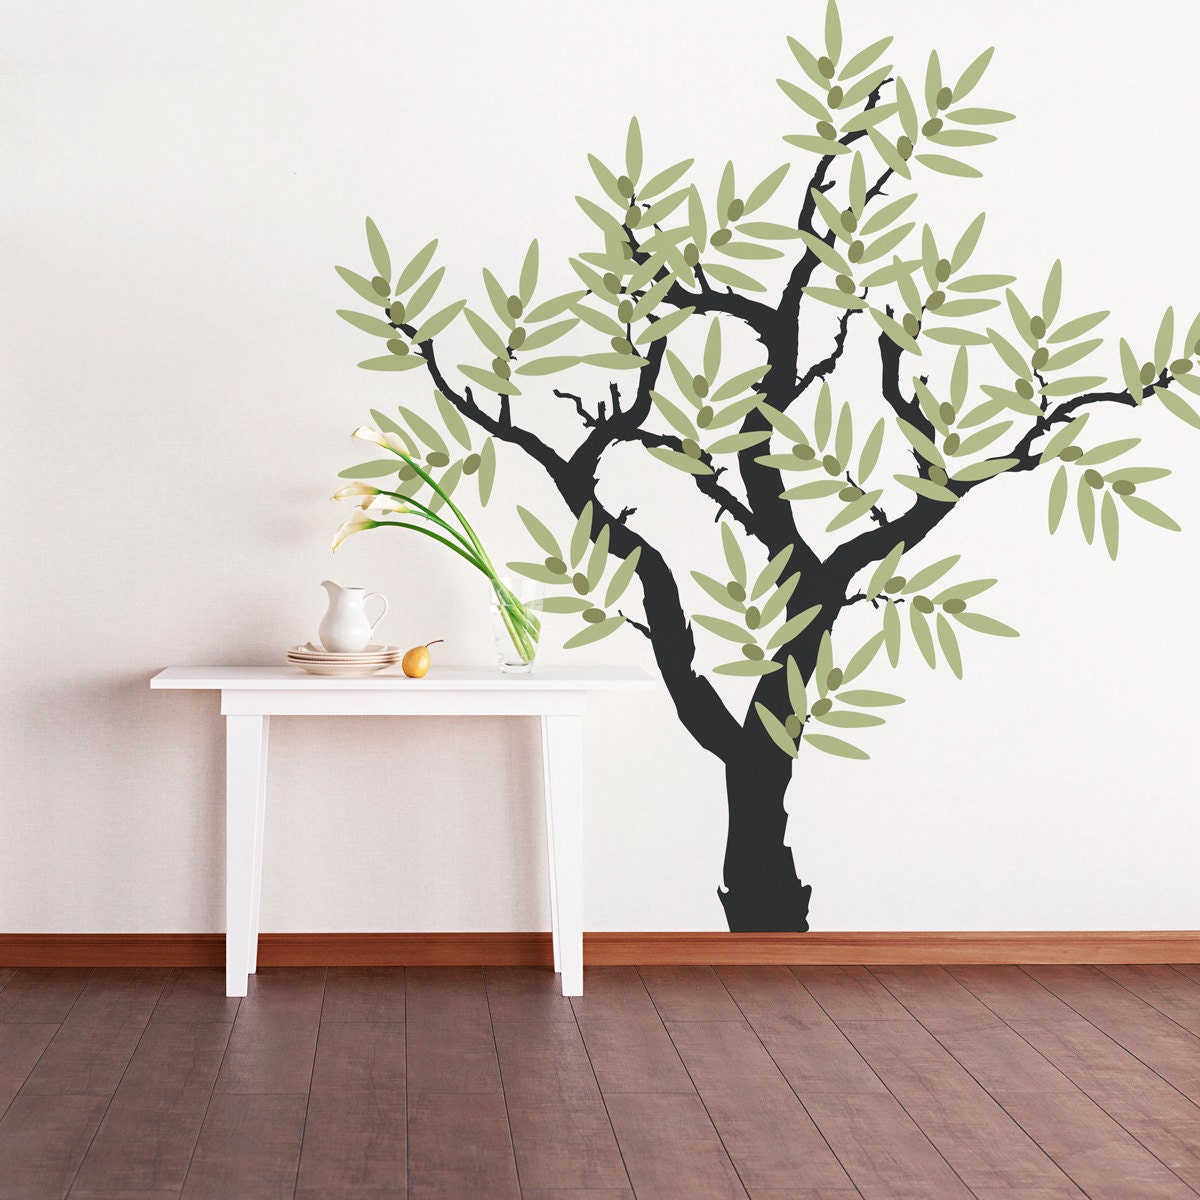 Olive tree vinyl wall decal tree wall sticker nature wall zoom amipublicfo Gallery